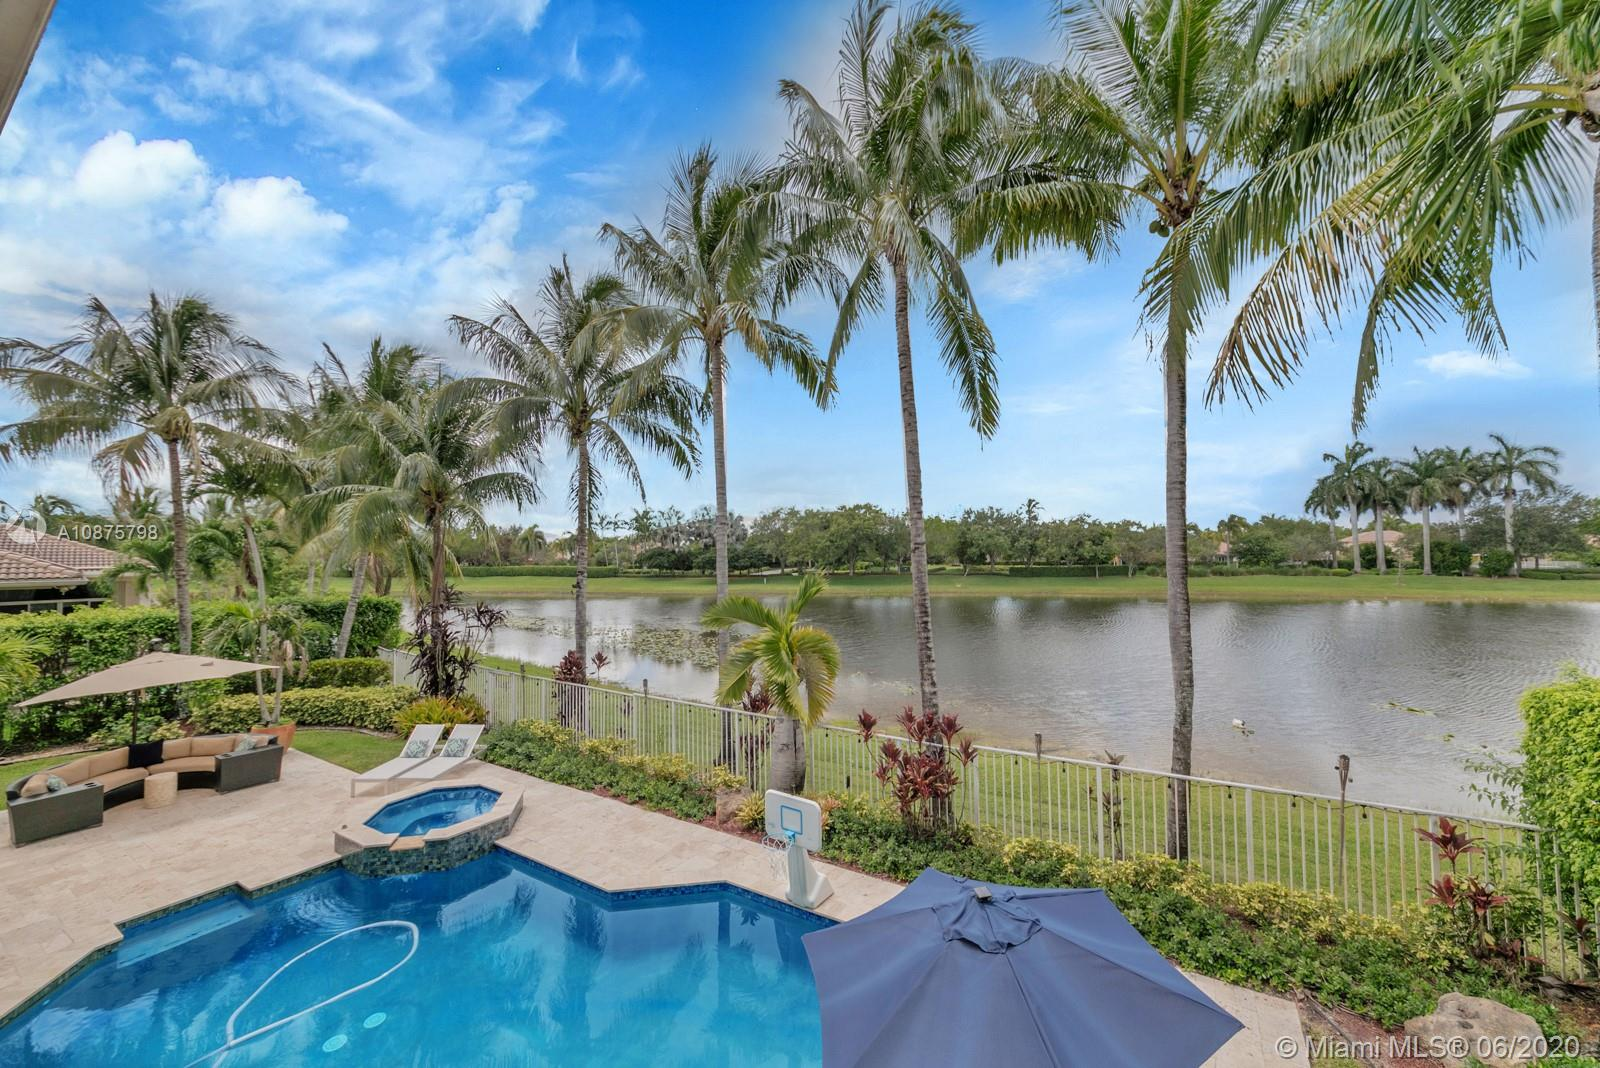 WoW! Big, Bold & Beautiful! Tastefully updated with a contemporary flair, this lakefront home is perfect for enjoying the Florida lifestyle. 5 bedrooms, 5.5 bathrooms + office, 20x14 playroom and loft spans 5365 sq ft (inclusive of 1/1 guest house). Grand entry with volume ceiling and elegant custom staircase welcome you home! Center island kitchen w/breakfast nook overlooks the family room. Luxurious master wing w/sitting area features 300 sq ft balcony allowing you to experience breathtaking sunsets from your private suite. The resort-style backyard features a travertine marble patio and summer kitchen w/built in grill+Argentinian BBQ, perfect for outdoor chef. Heated and salt freeform pool+spa is surrounded by lush tropical landscaping. Guard gated community w/pools, ballfields etc.